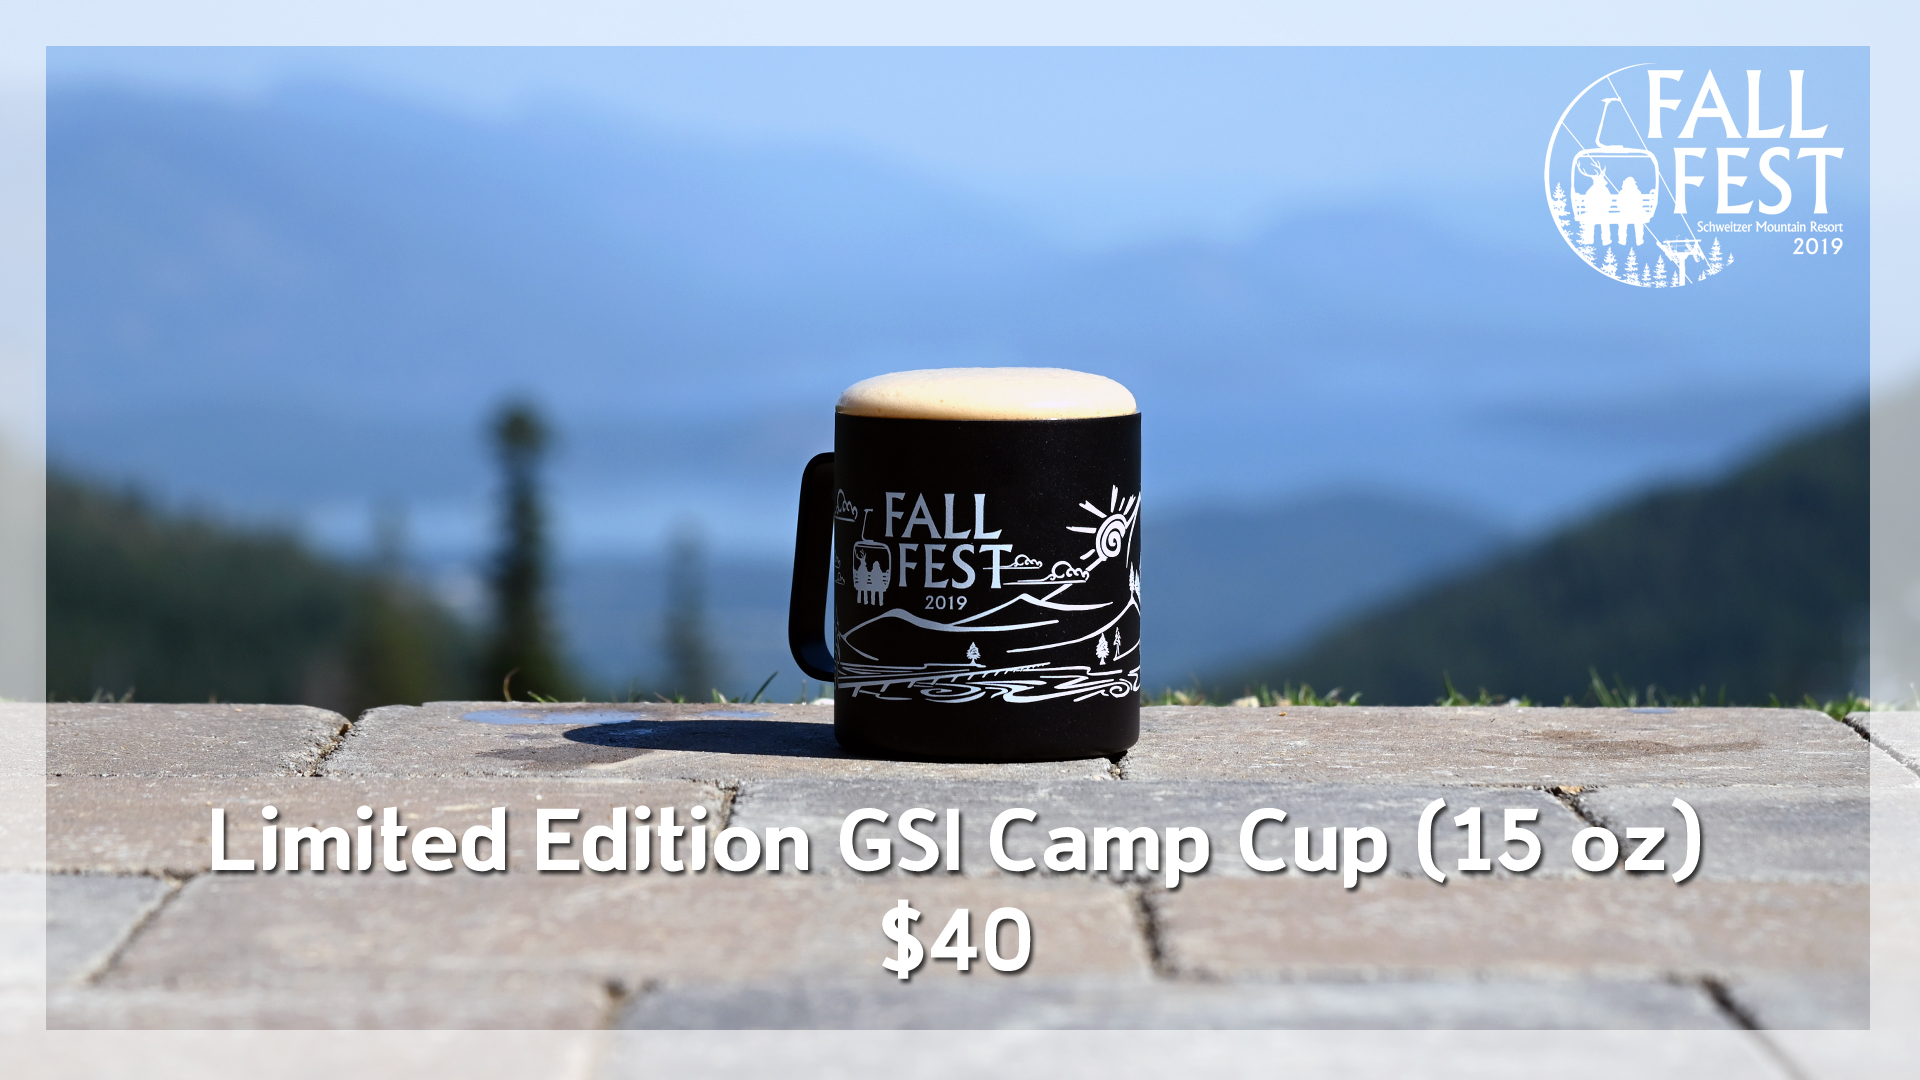 Limited Edition Camp Cup